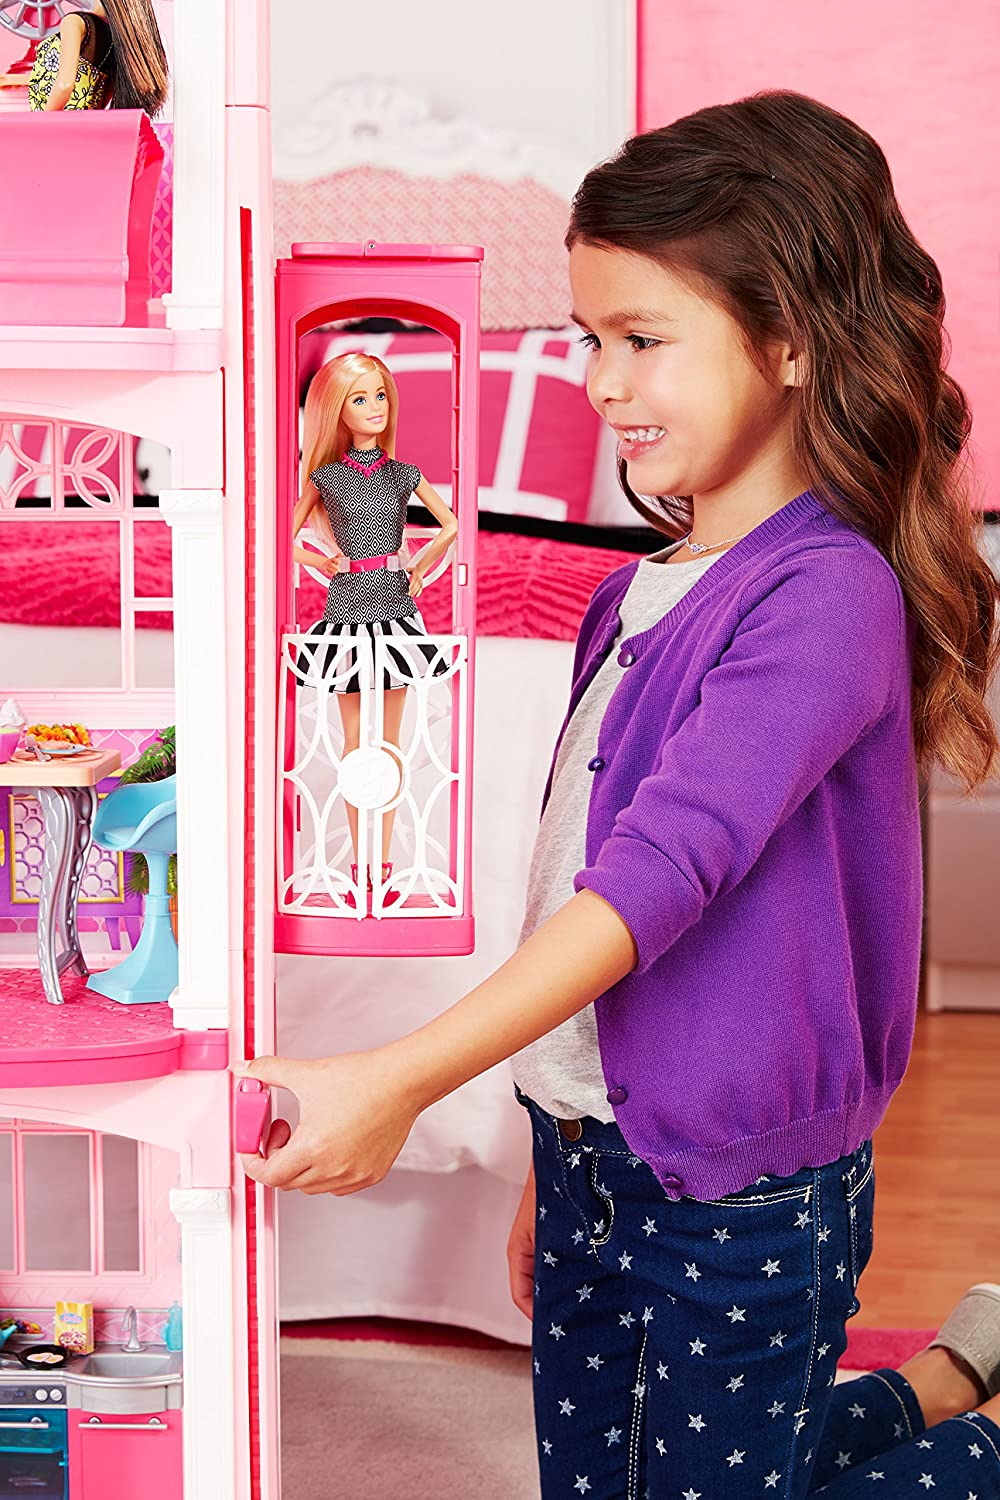 Barbie Dream House With Elevator For Kids Toys Reviewed In 2019